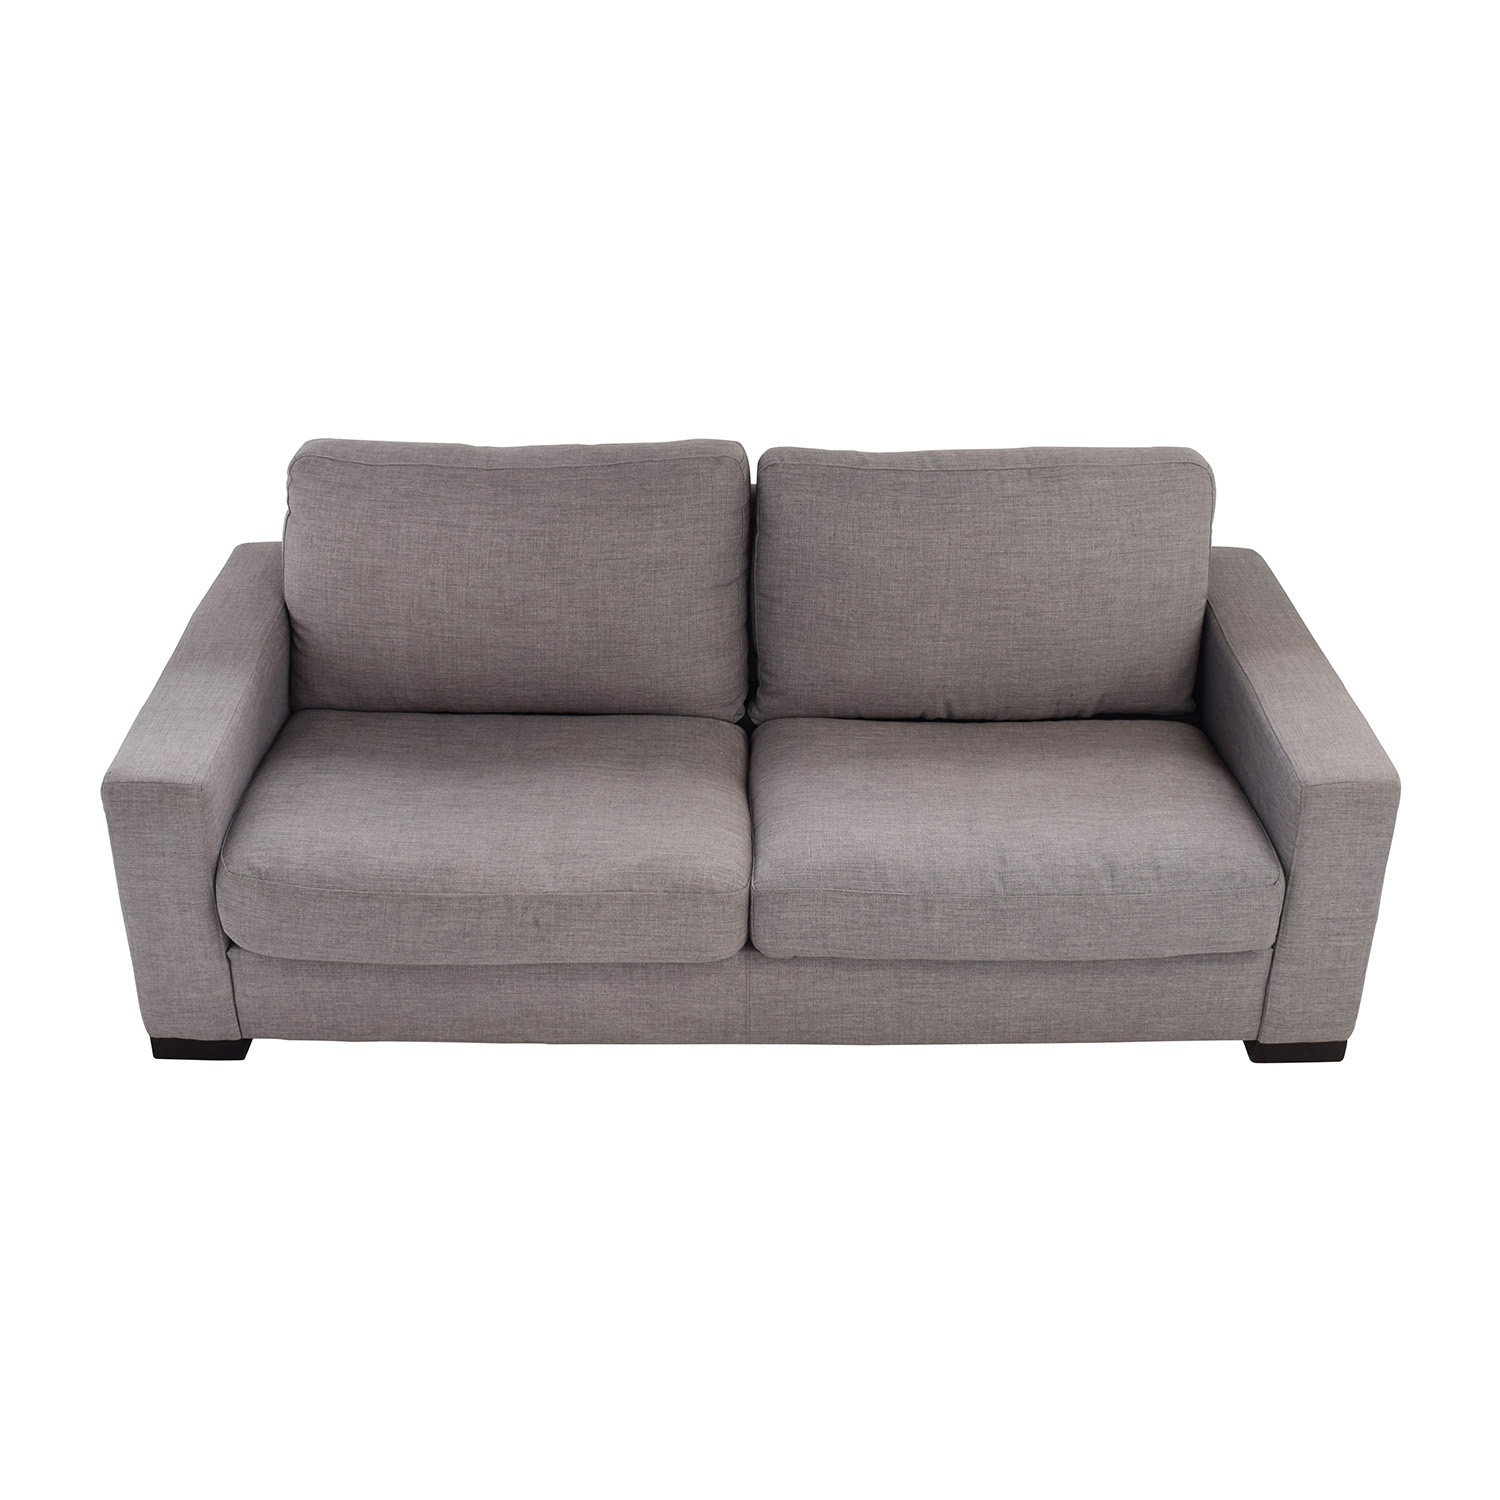 buy YLIVING Cooper Grey Sofa YLIVING Sofas